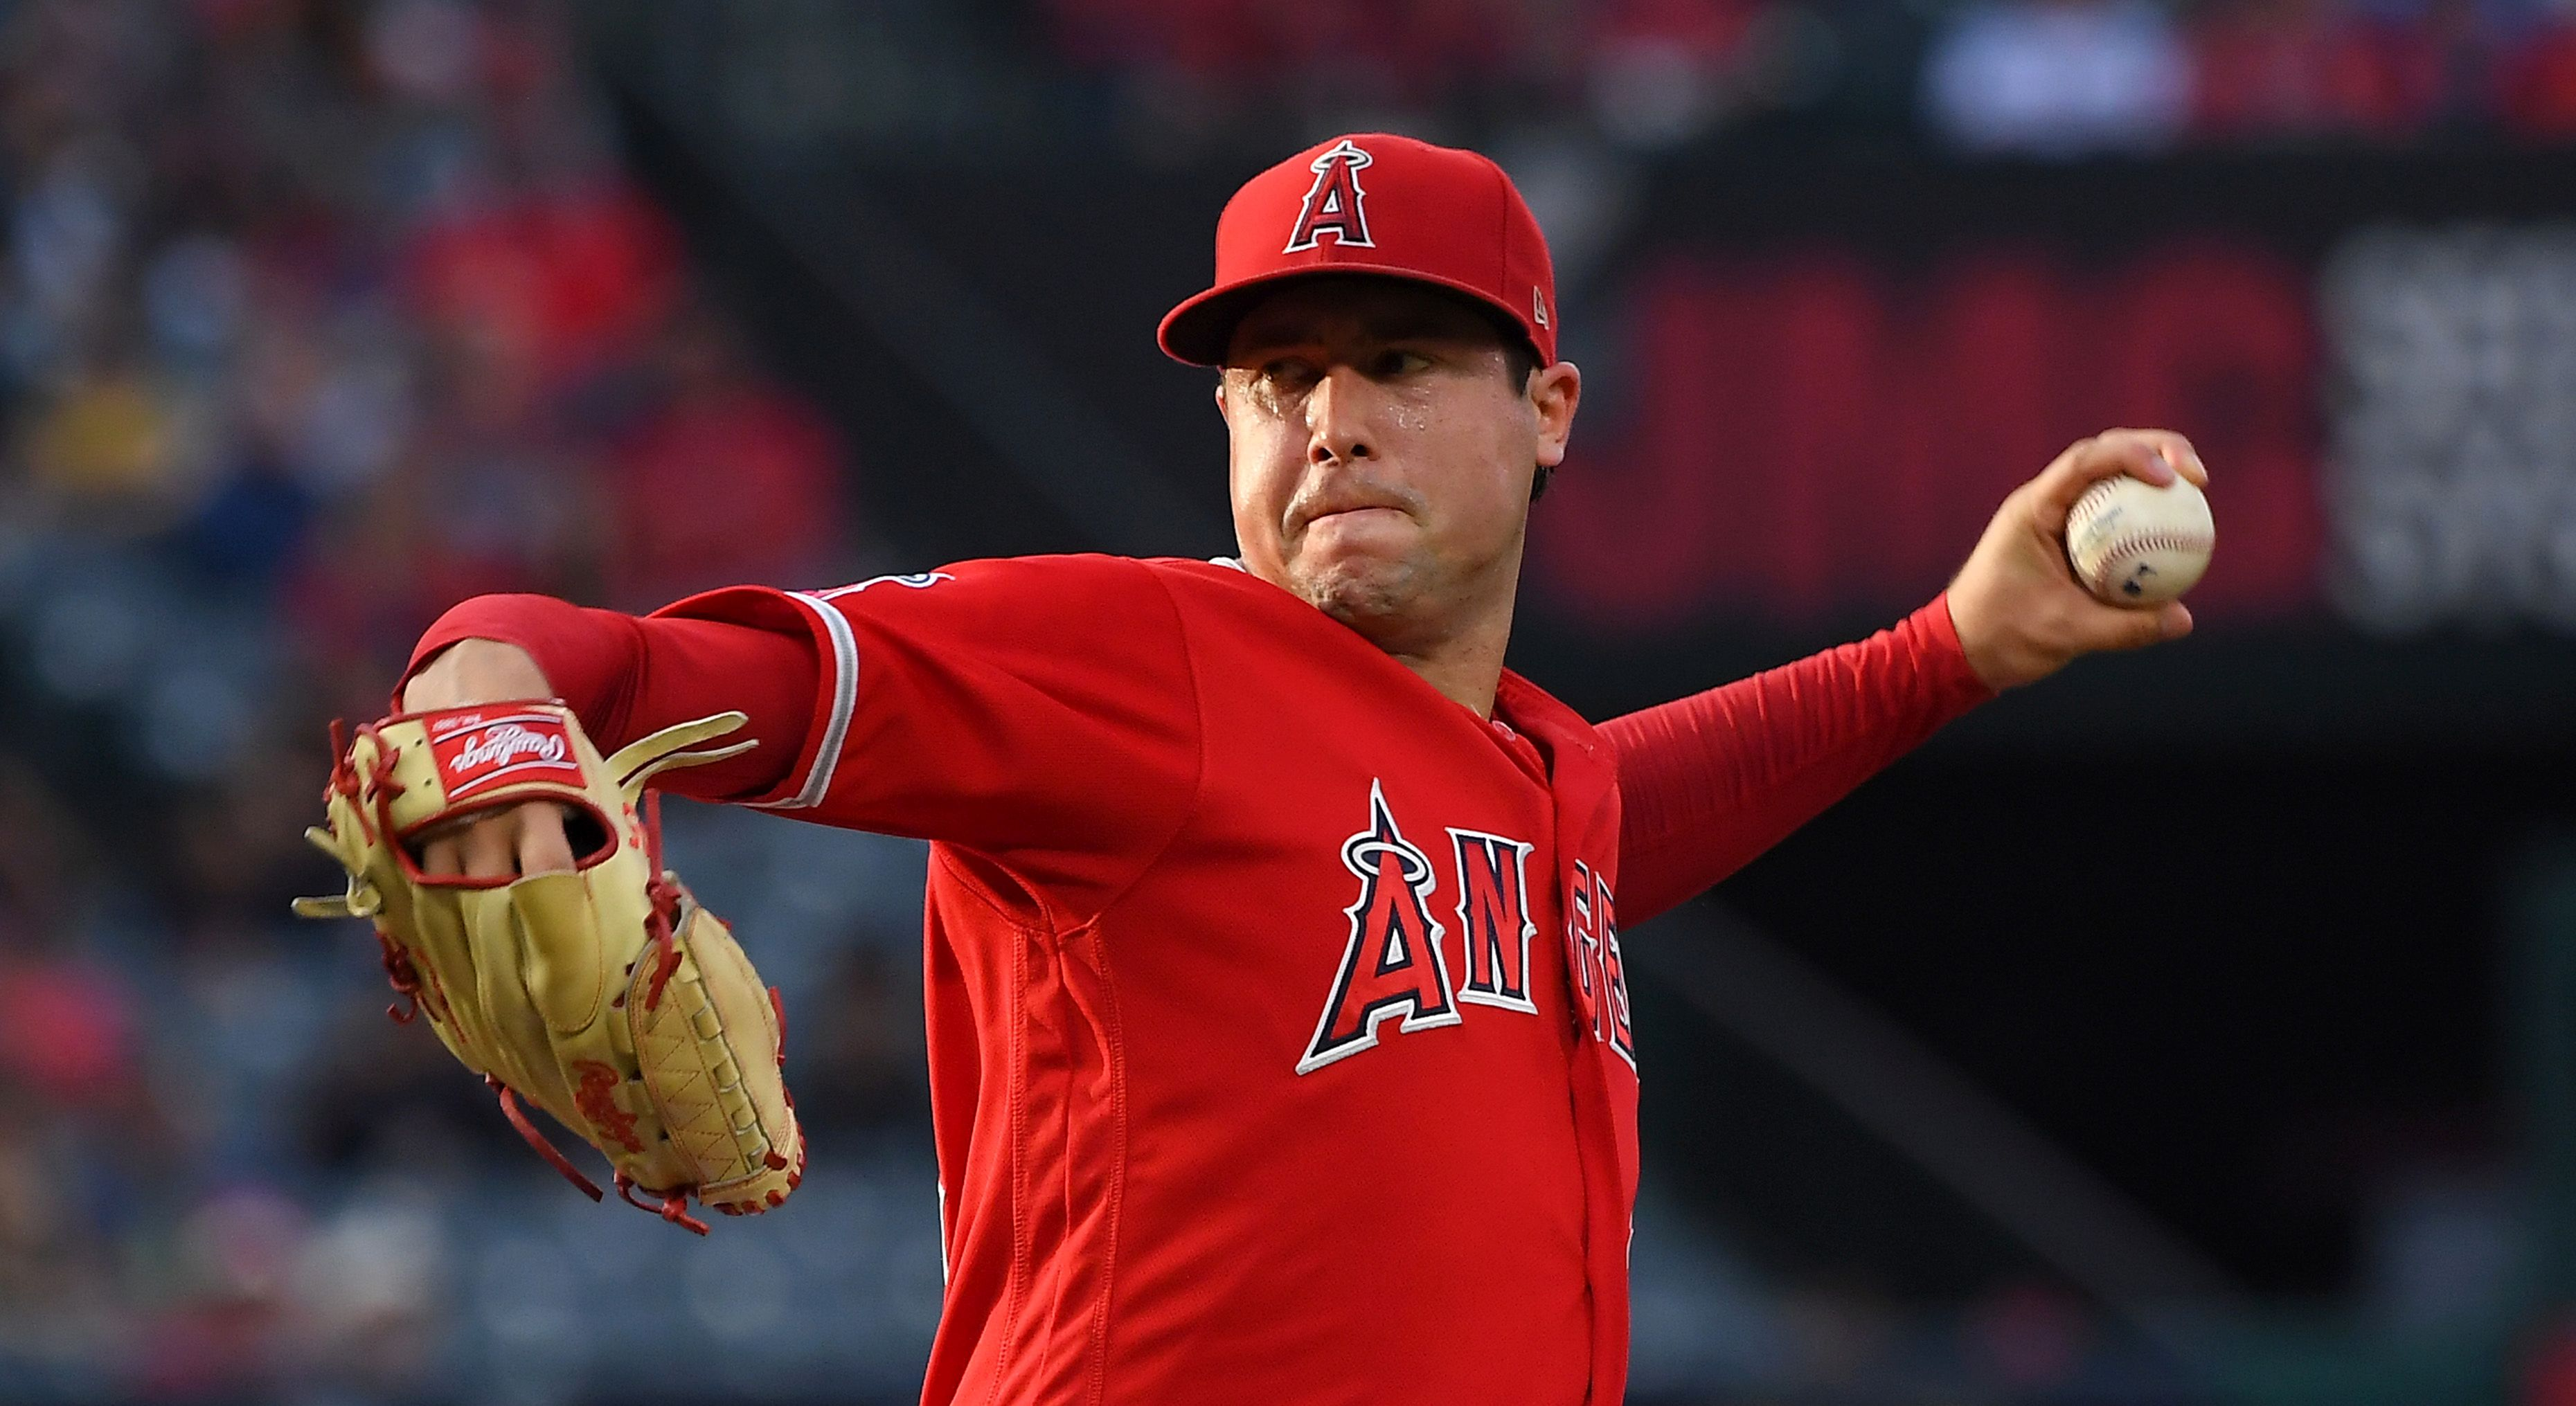 Los Angeles Angels Starting Pitcher Tyler Skaggs Dead at 27, Says Team